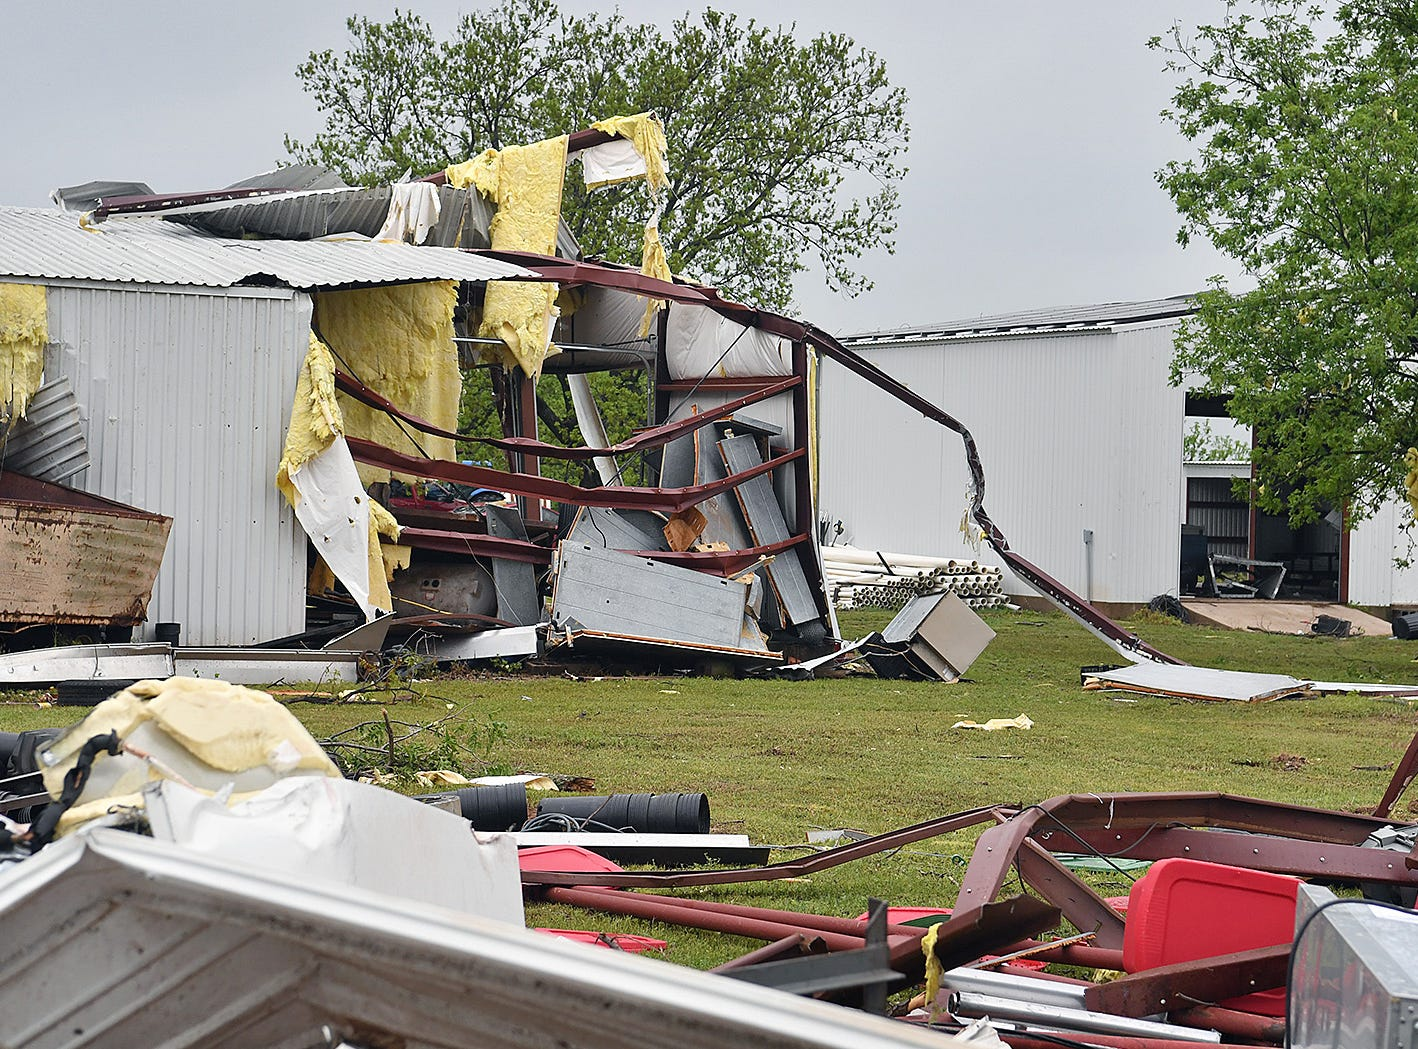 Most of the farm buildings at Jetton Farms in Charlie, Texas were destroyed when a tornado struck the small farming community Tuesday evening.